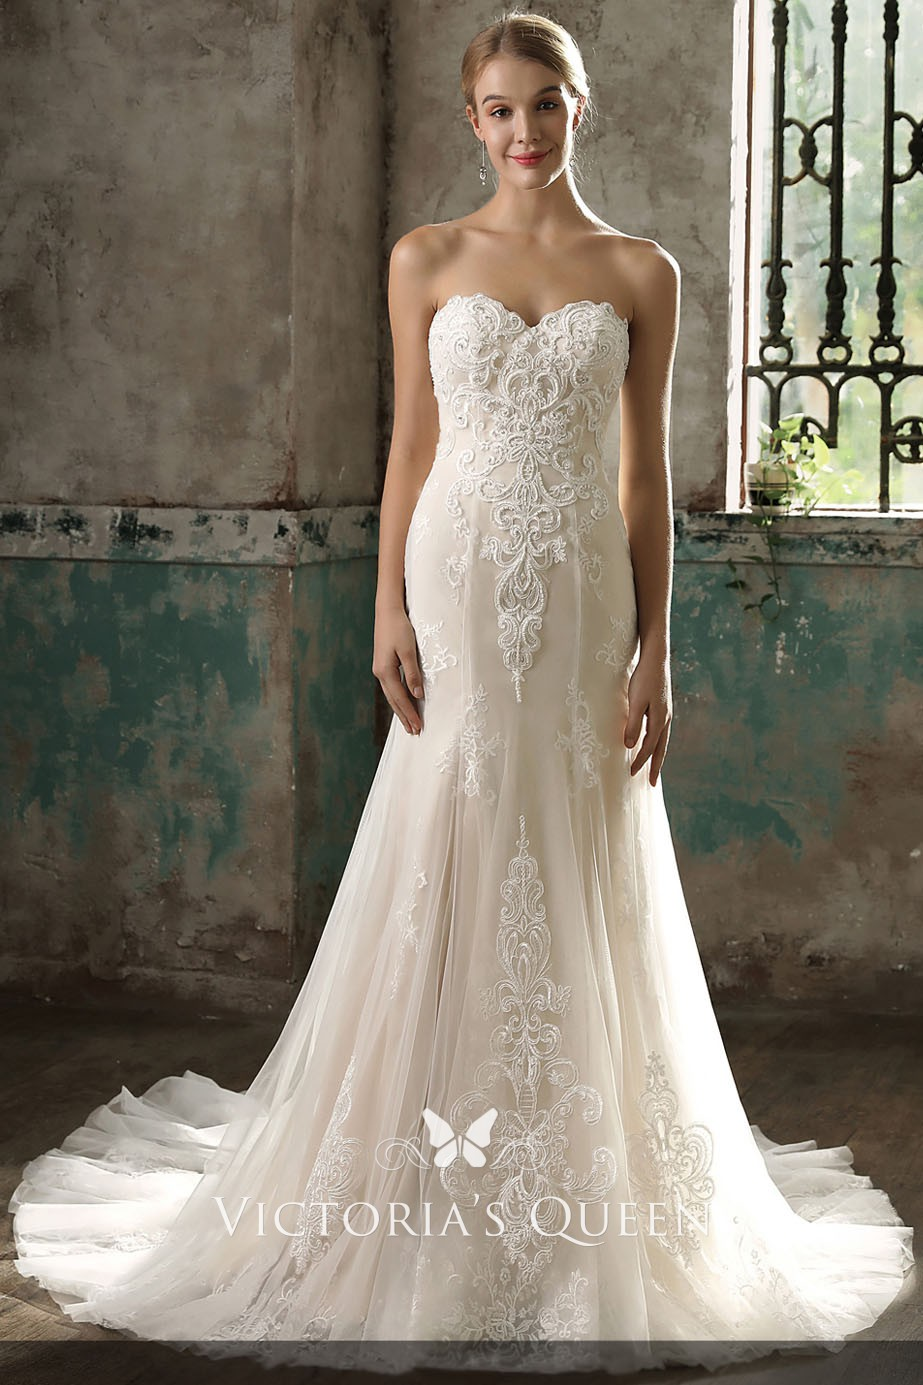 Feature Ball Gown Wedding Dresses Tulle Short High Low Corset Modest This Dress Is Full Of